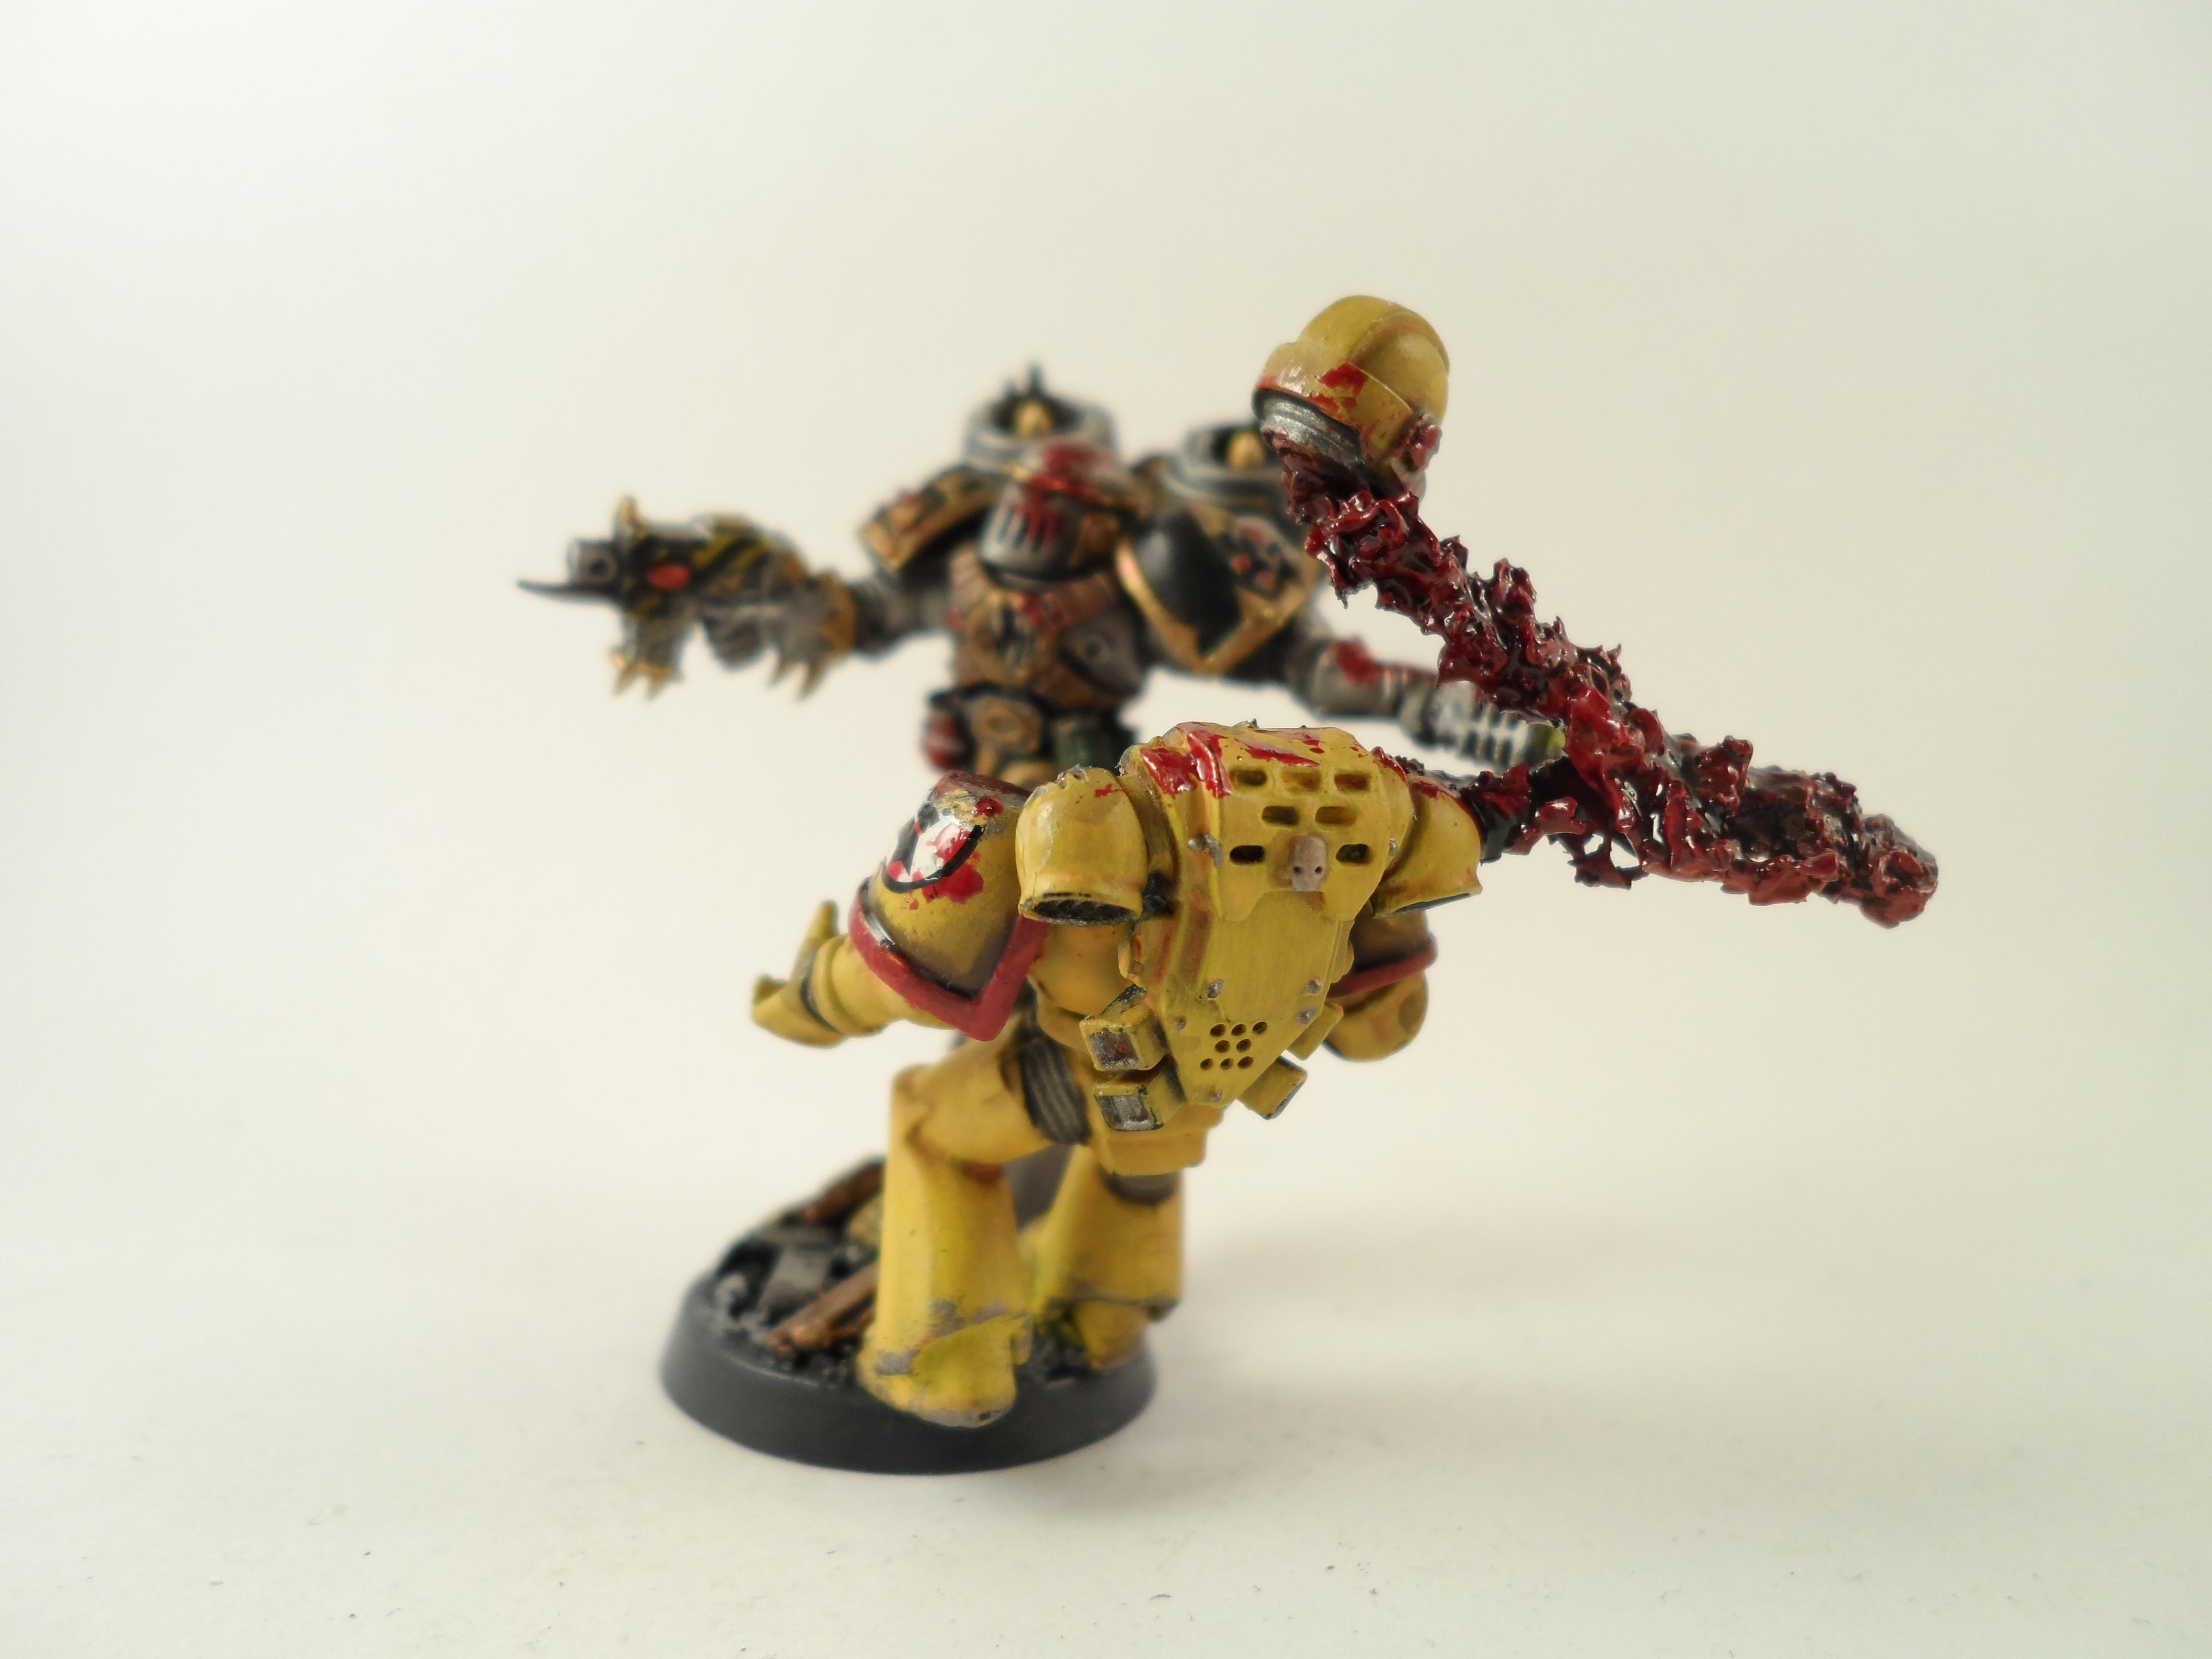 Chaos Space Marines, Heretics, Imperial Fists, Raptors